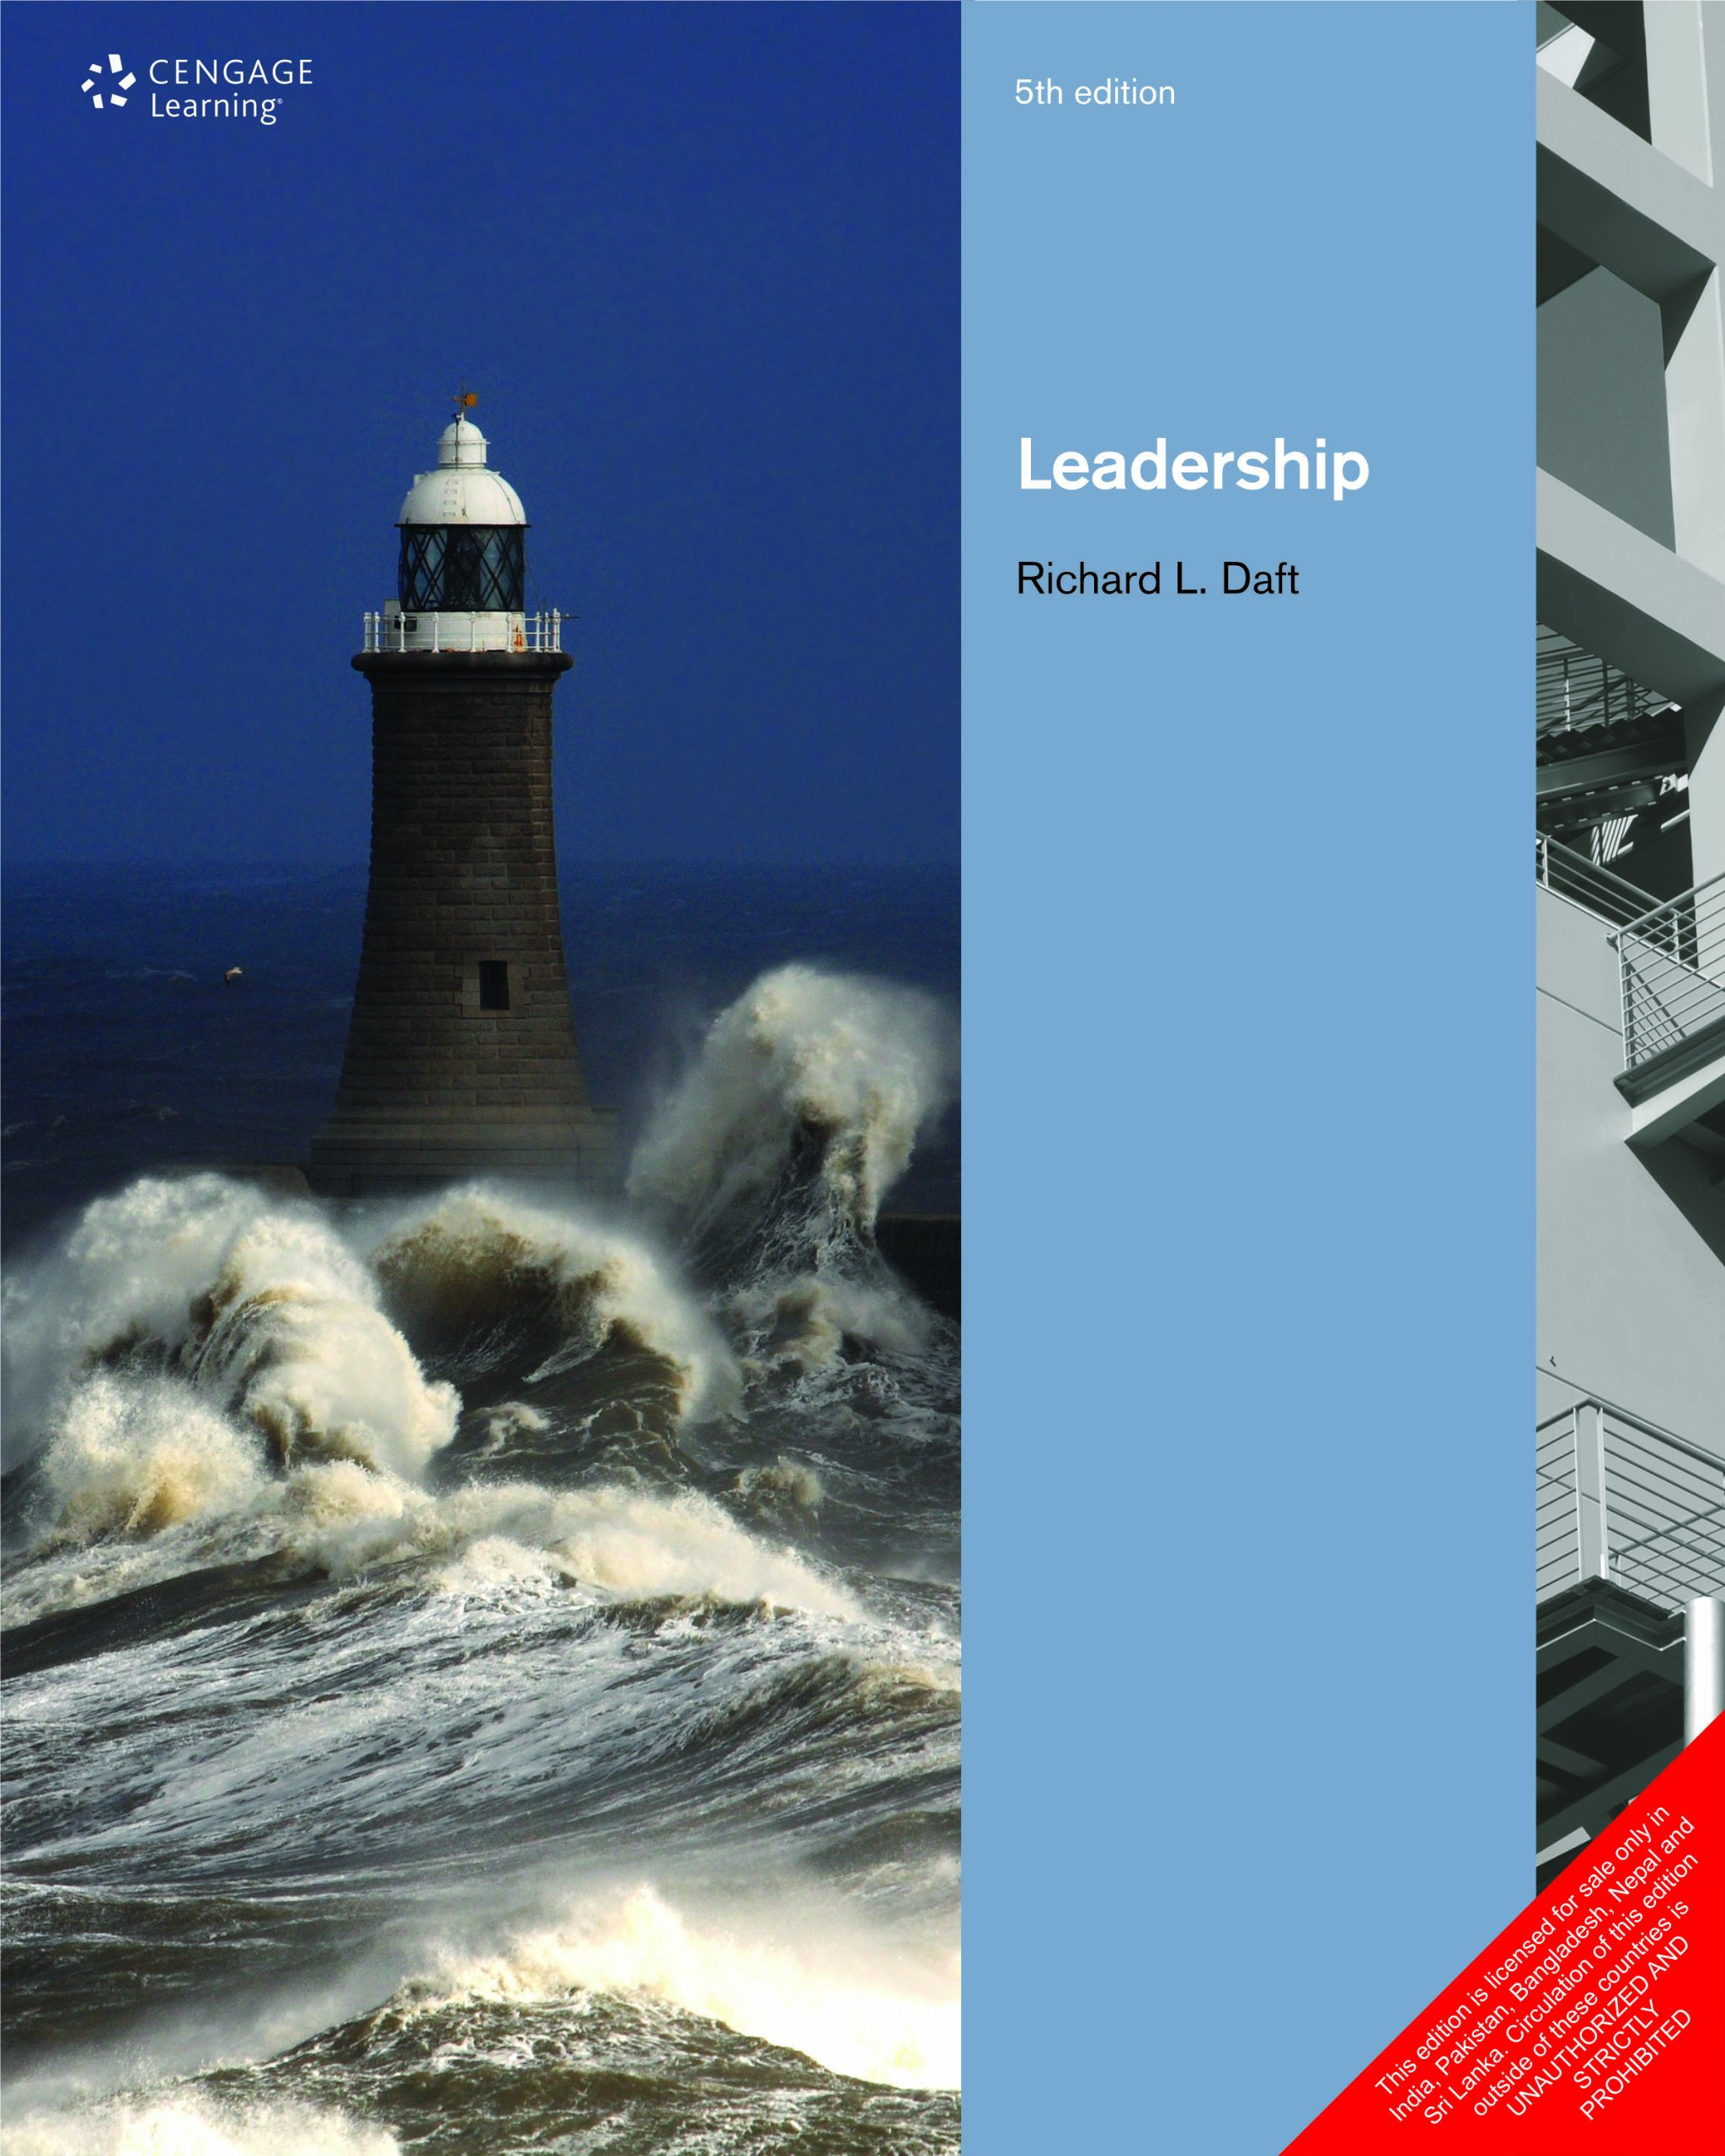 Leadership international edition daft 9788131517147 amazon leadership international edition daft 9788131517147 amazon books fandeluxe